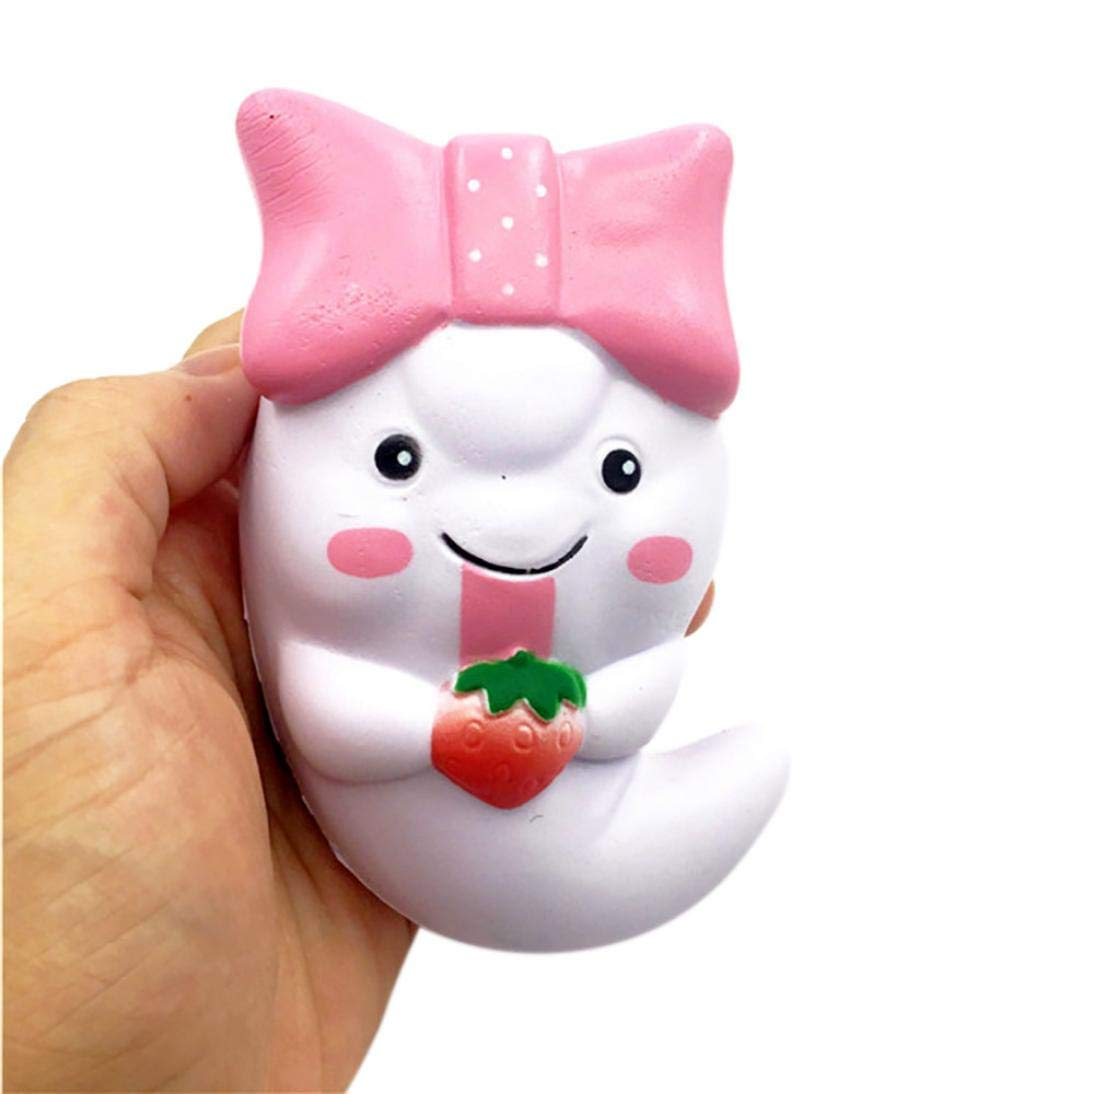 Halloween Toys - Jumbo Slow Rising Squishies Roysberry Toys, Cute Stress Relief Toys Ball Squishy Soft Kawaii Scented Decoration Toys for Adults White Bow Ghost 3D Puzzle Toys for Kids for Girls